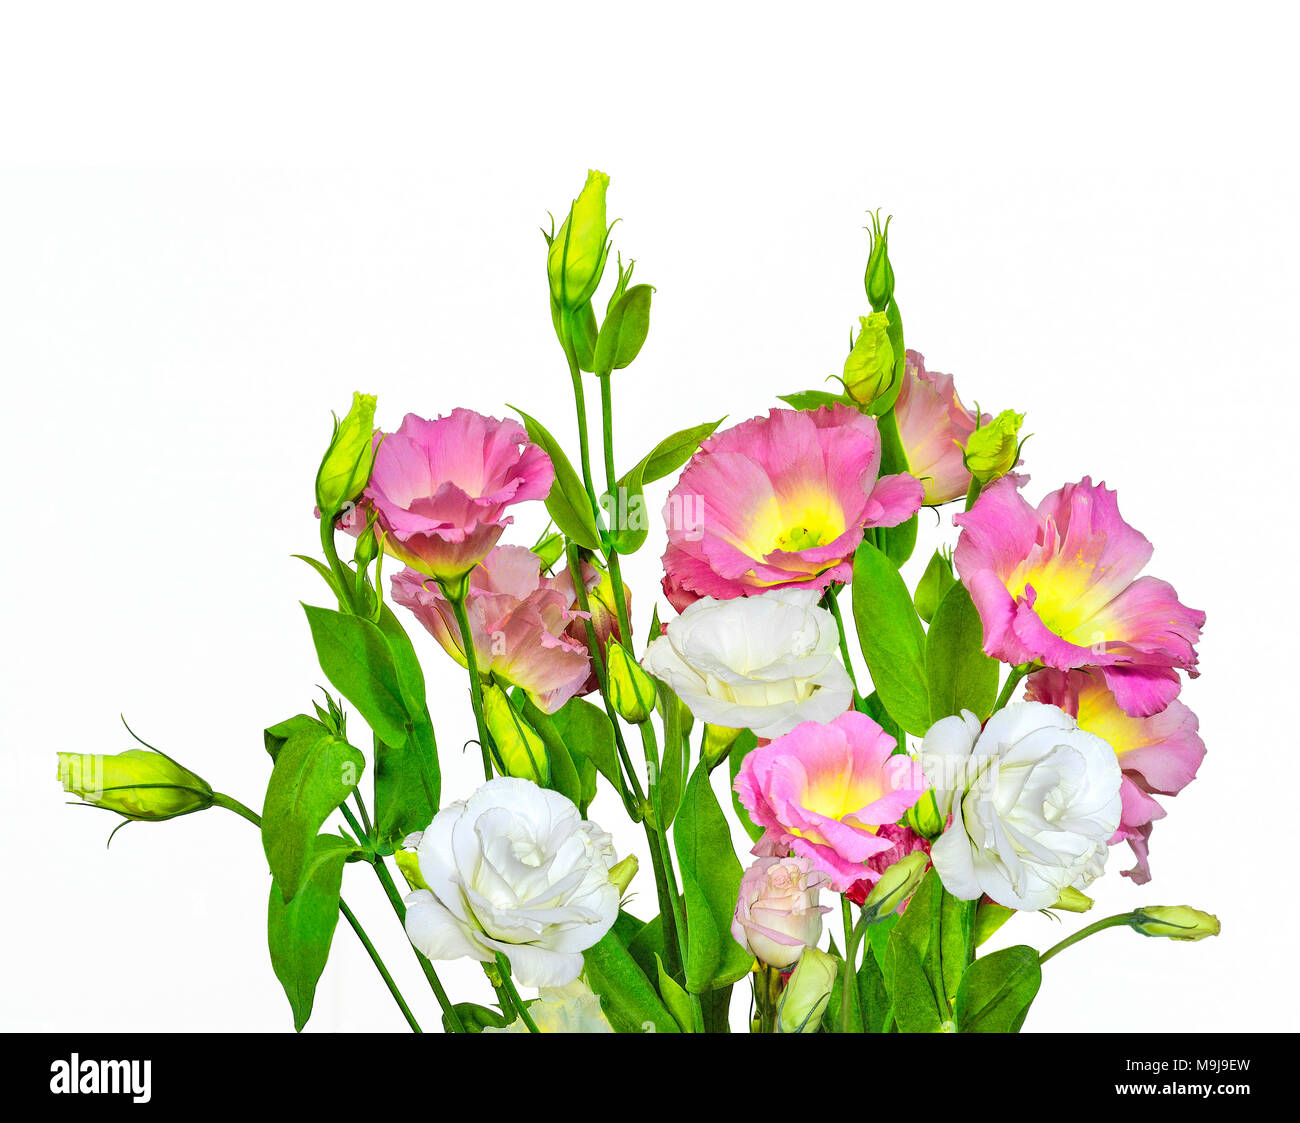 Bouquet Of Tender Pink With Yellow And White Eustoma Lisianthus